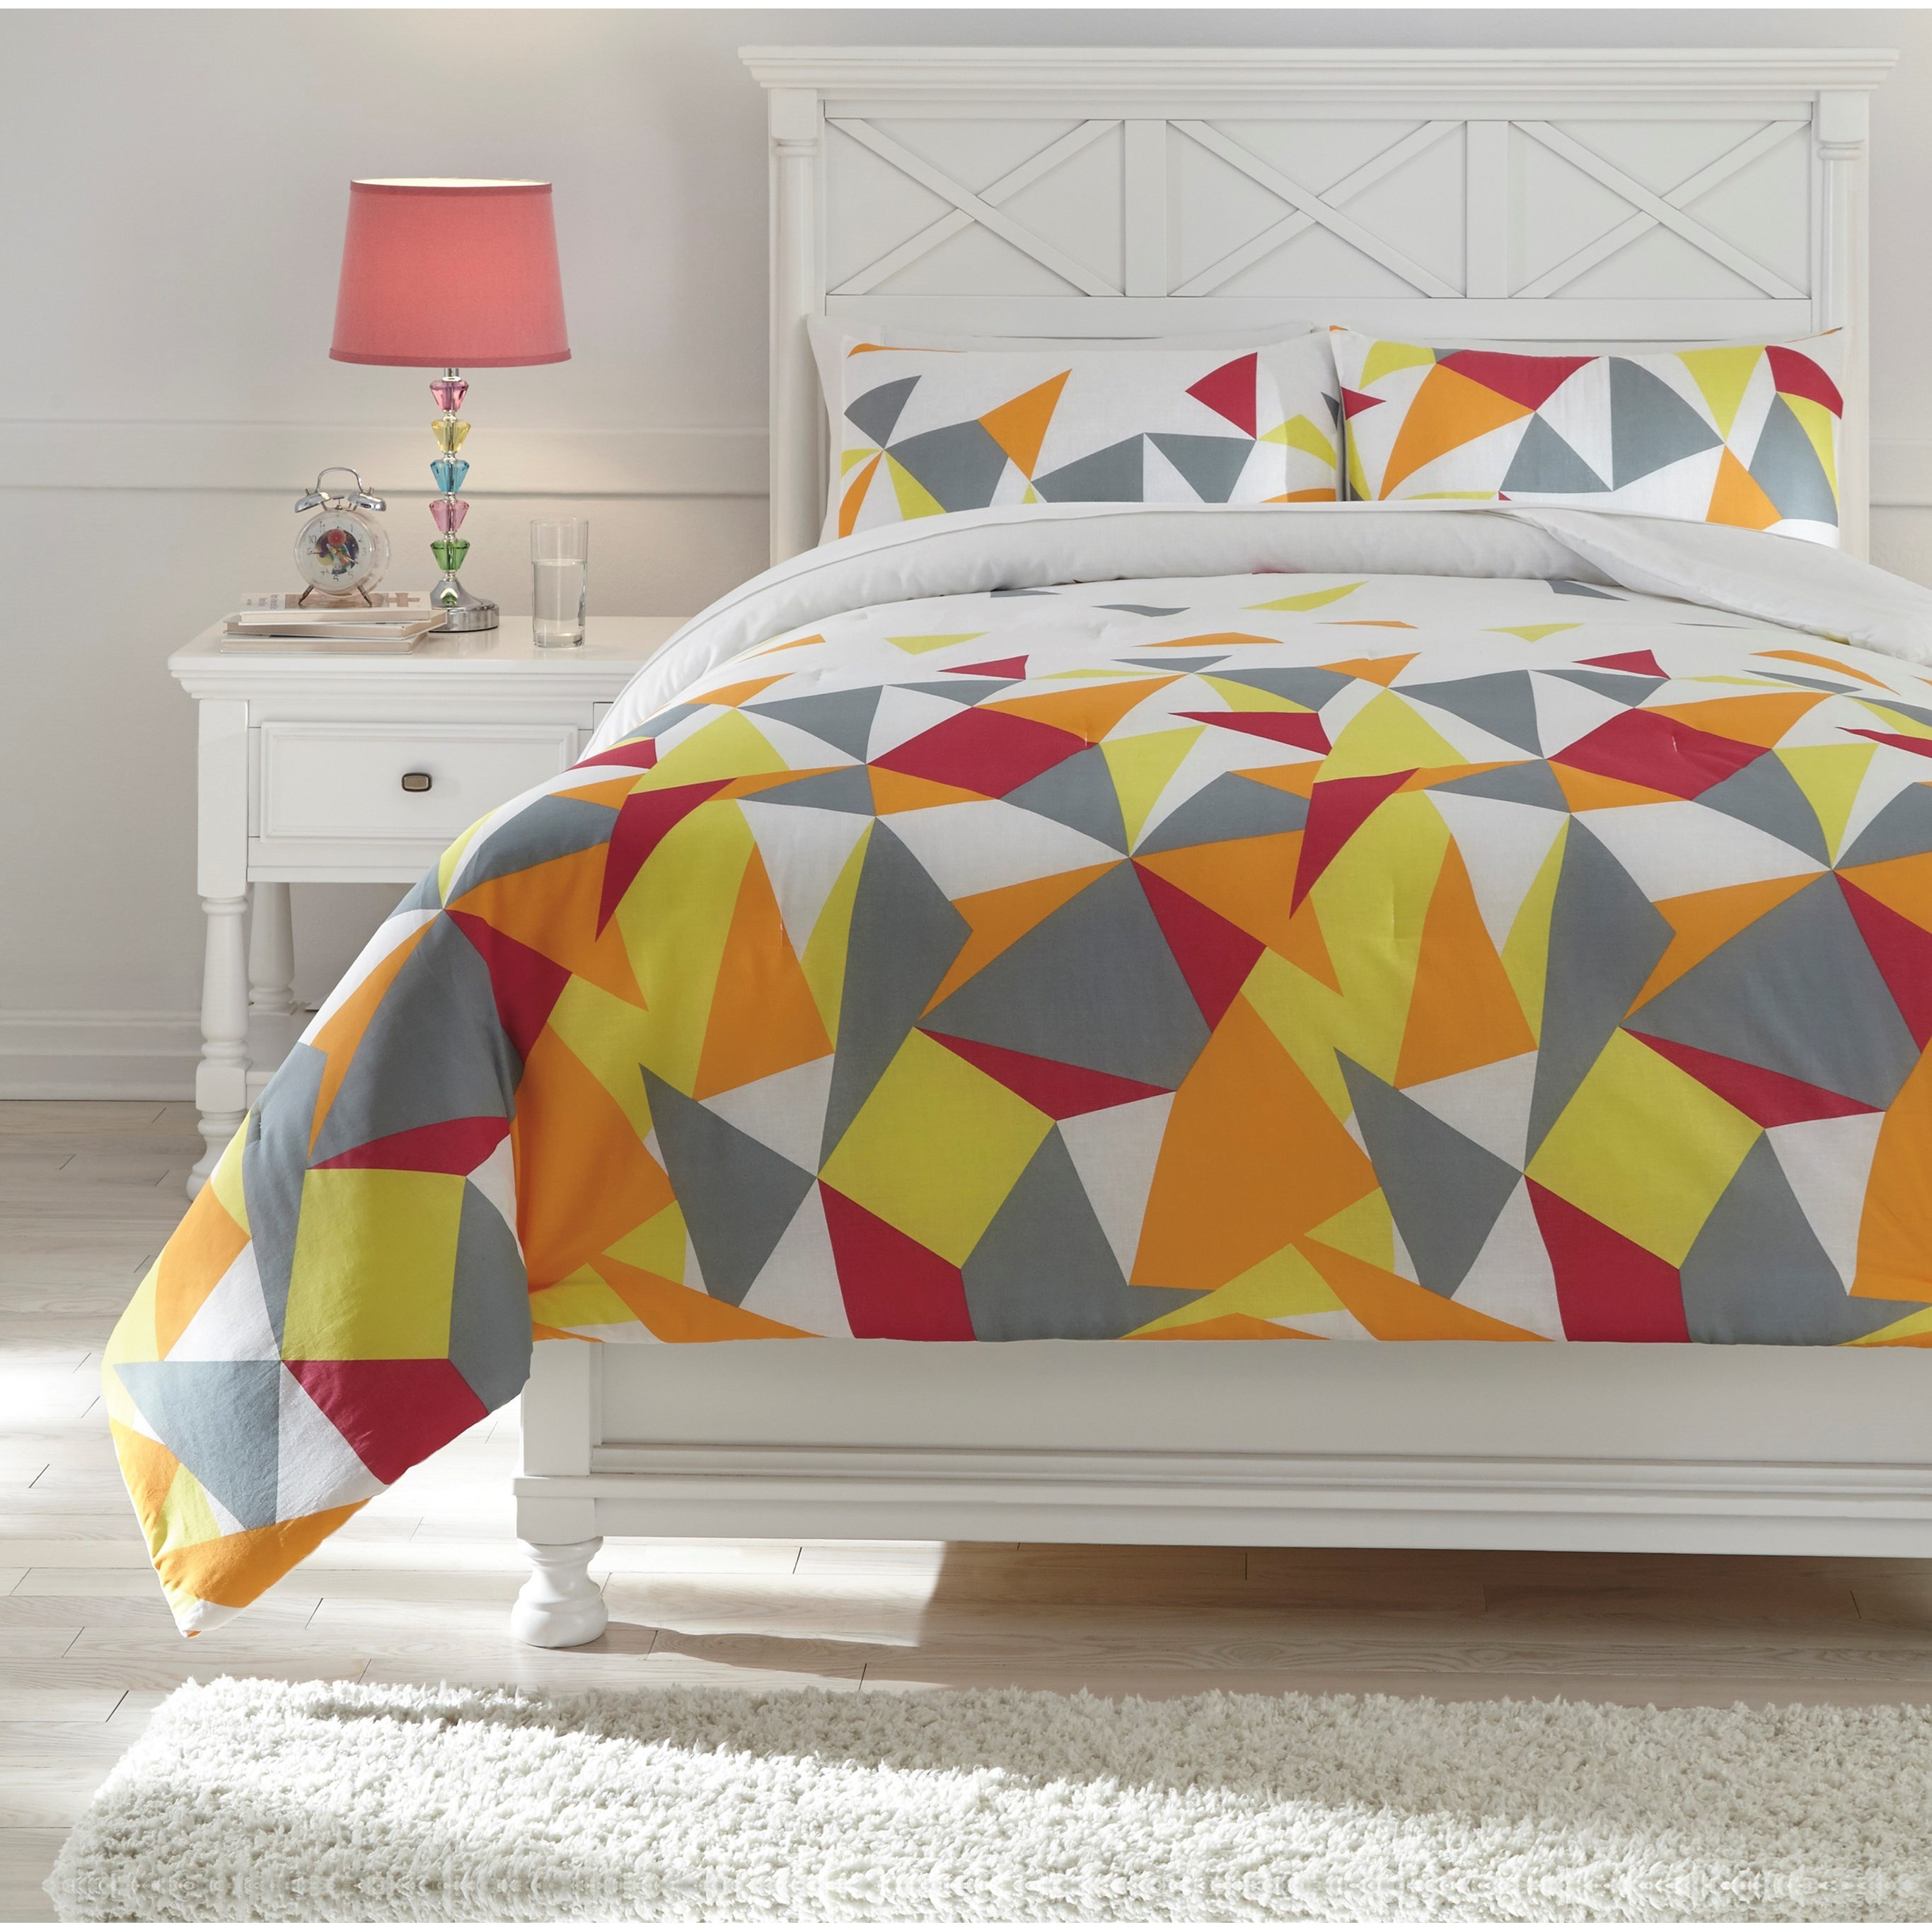 Full Maxie Multi Comforter Set